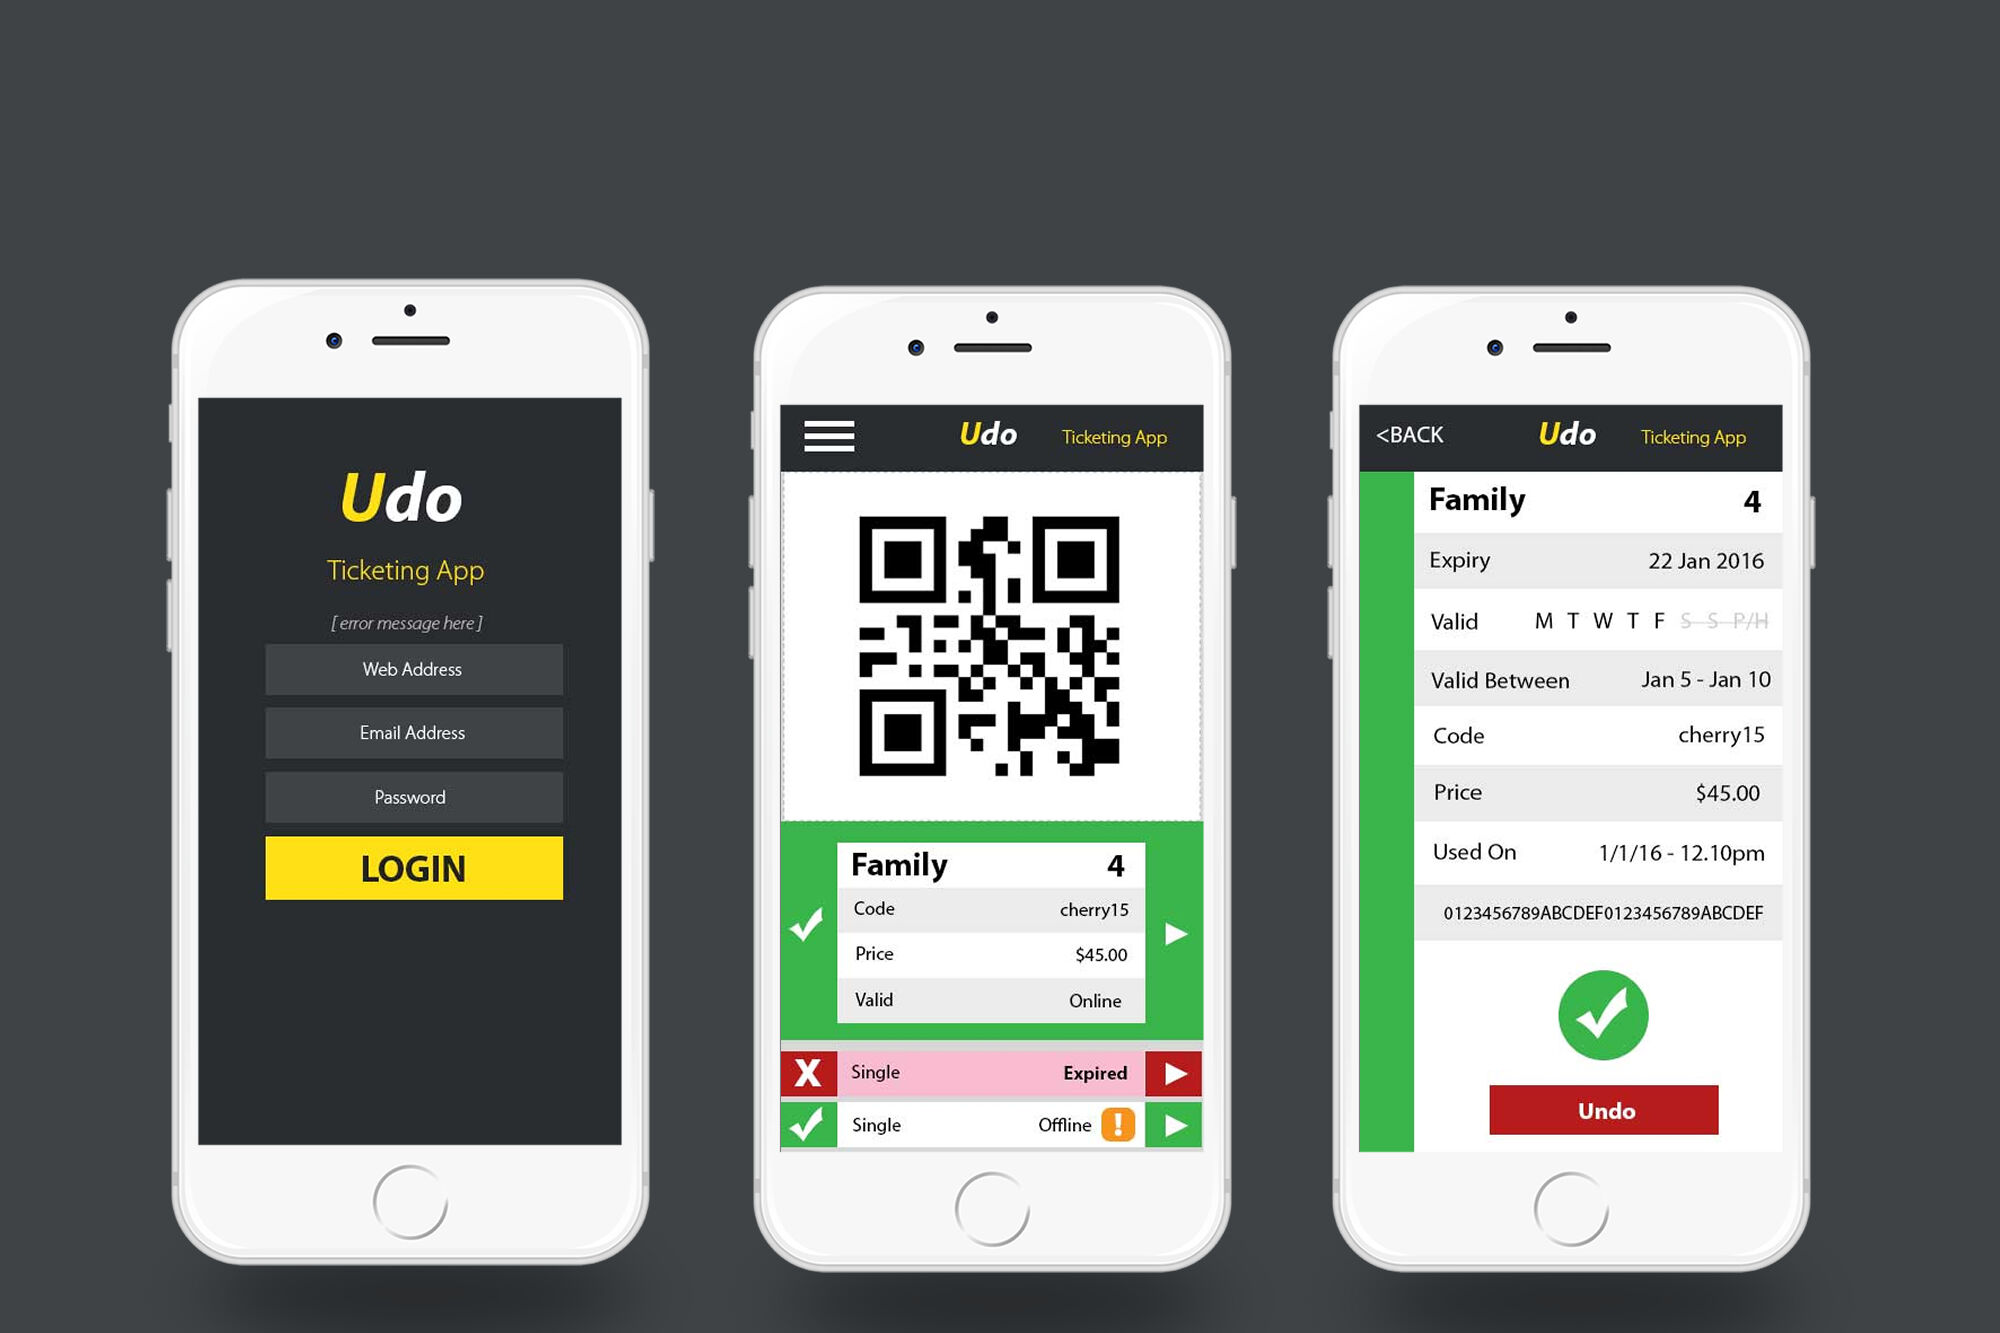 Mobile Ticket validation app on iPhone